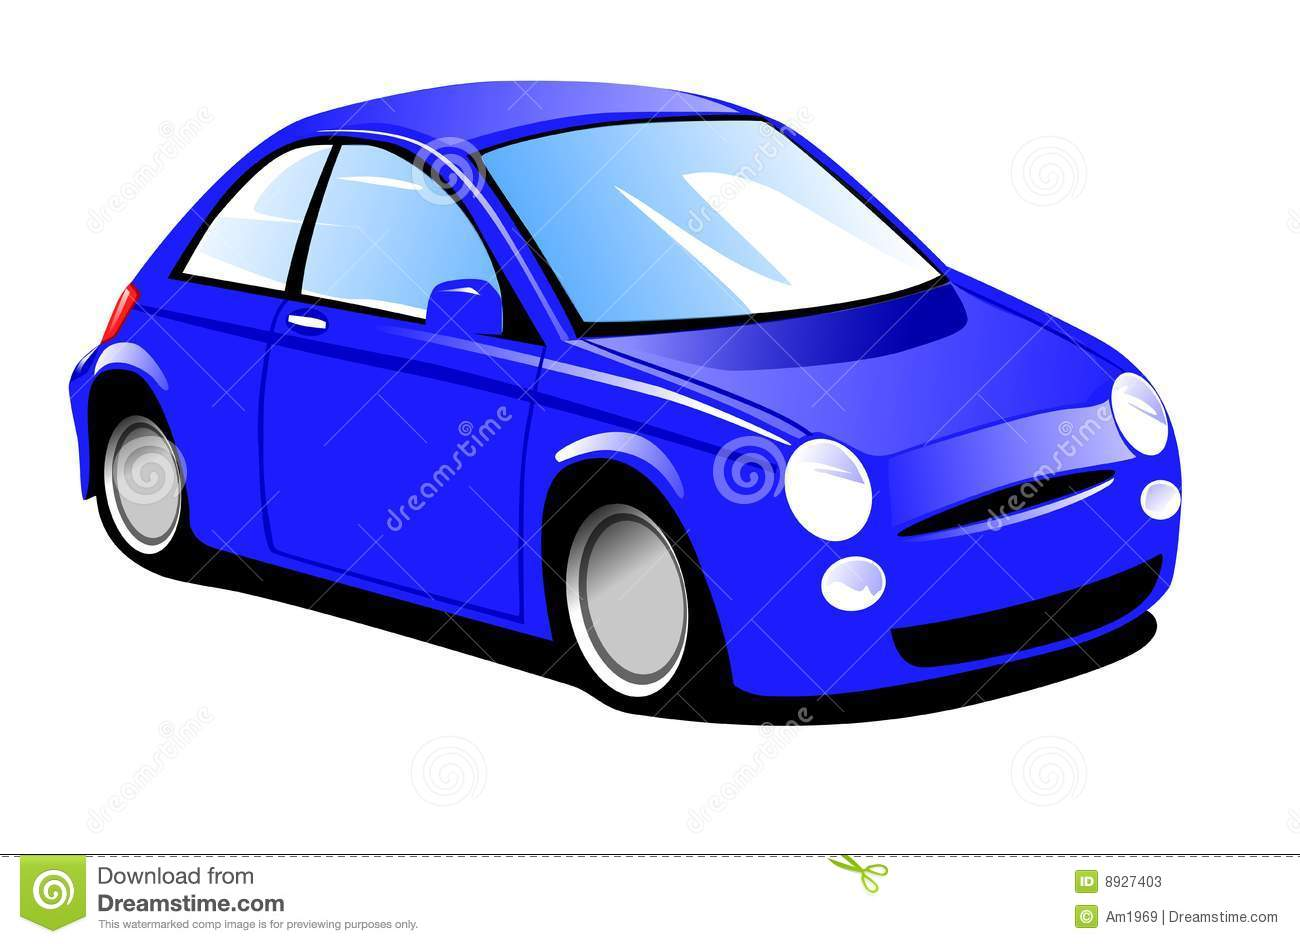 Race Car clipart blue Blue%20race%20car%20clipart Clipart Free Car Blue